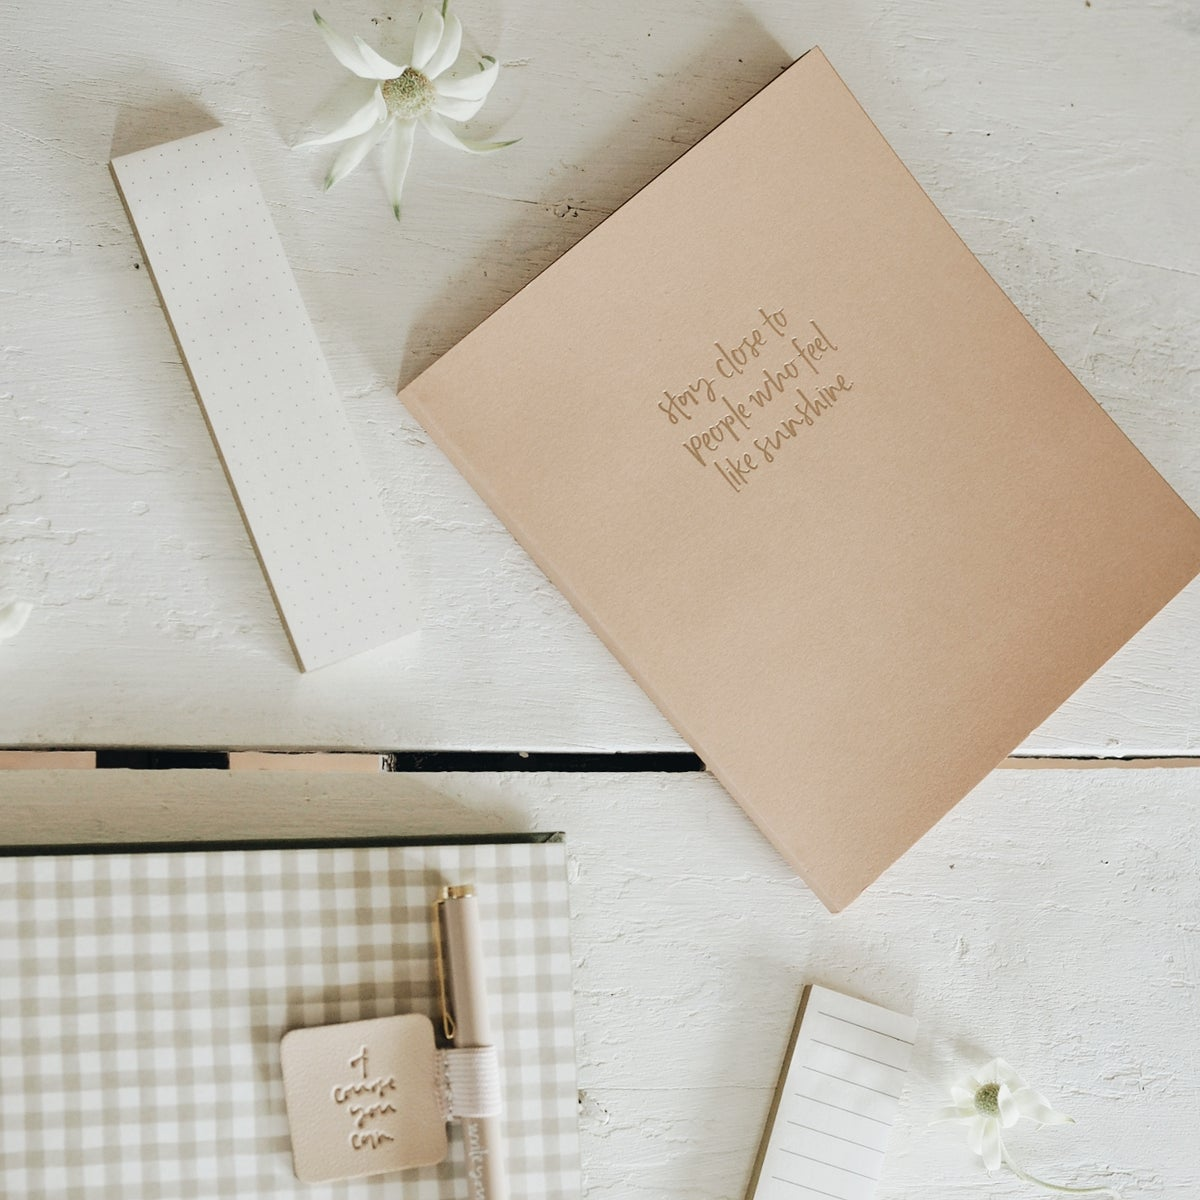 Image of emma kate co. notebook - stay close to people who feel like sunshine